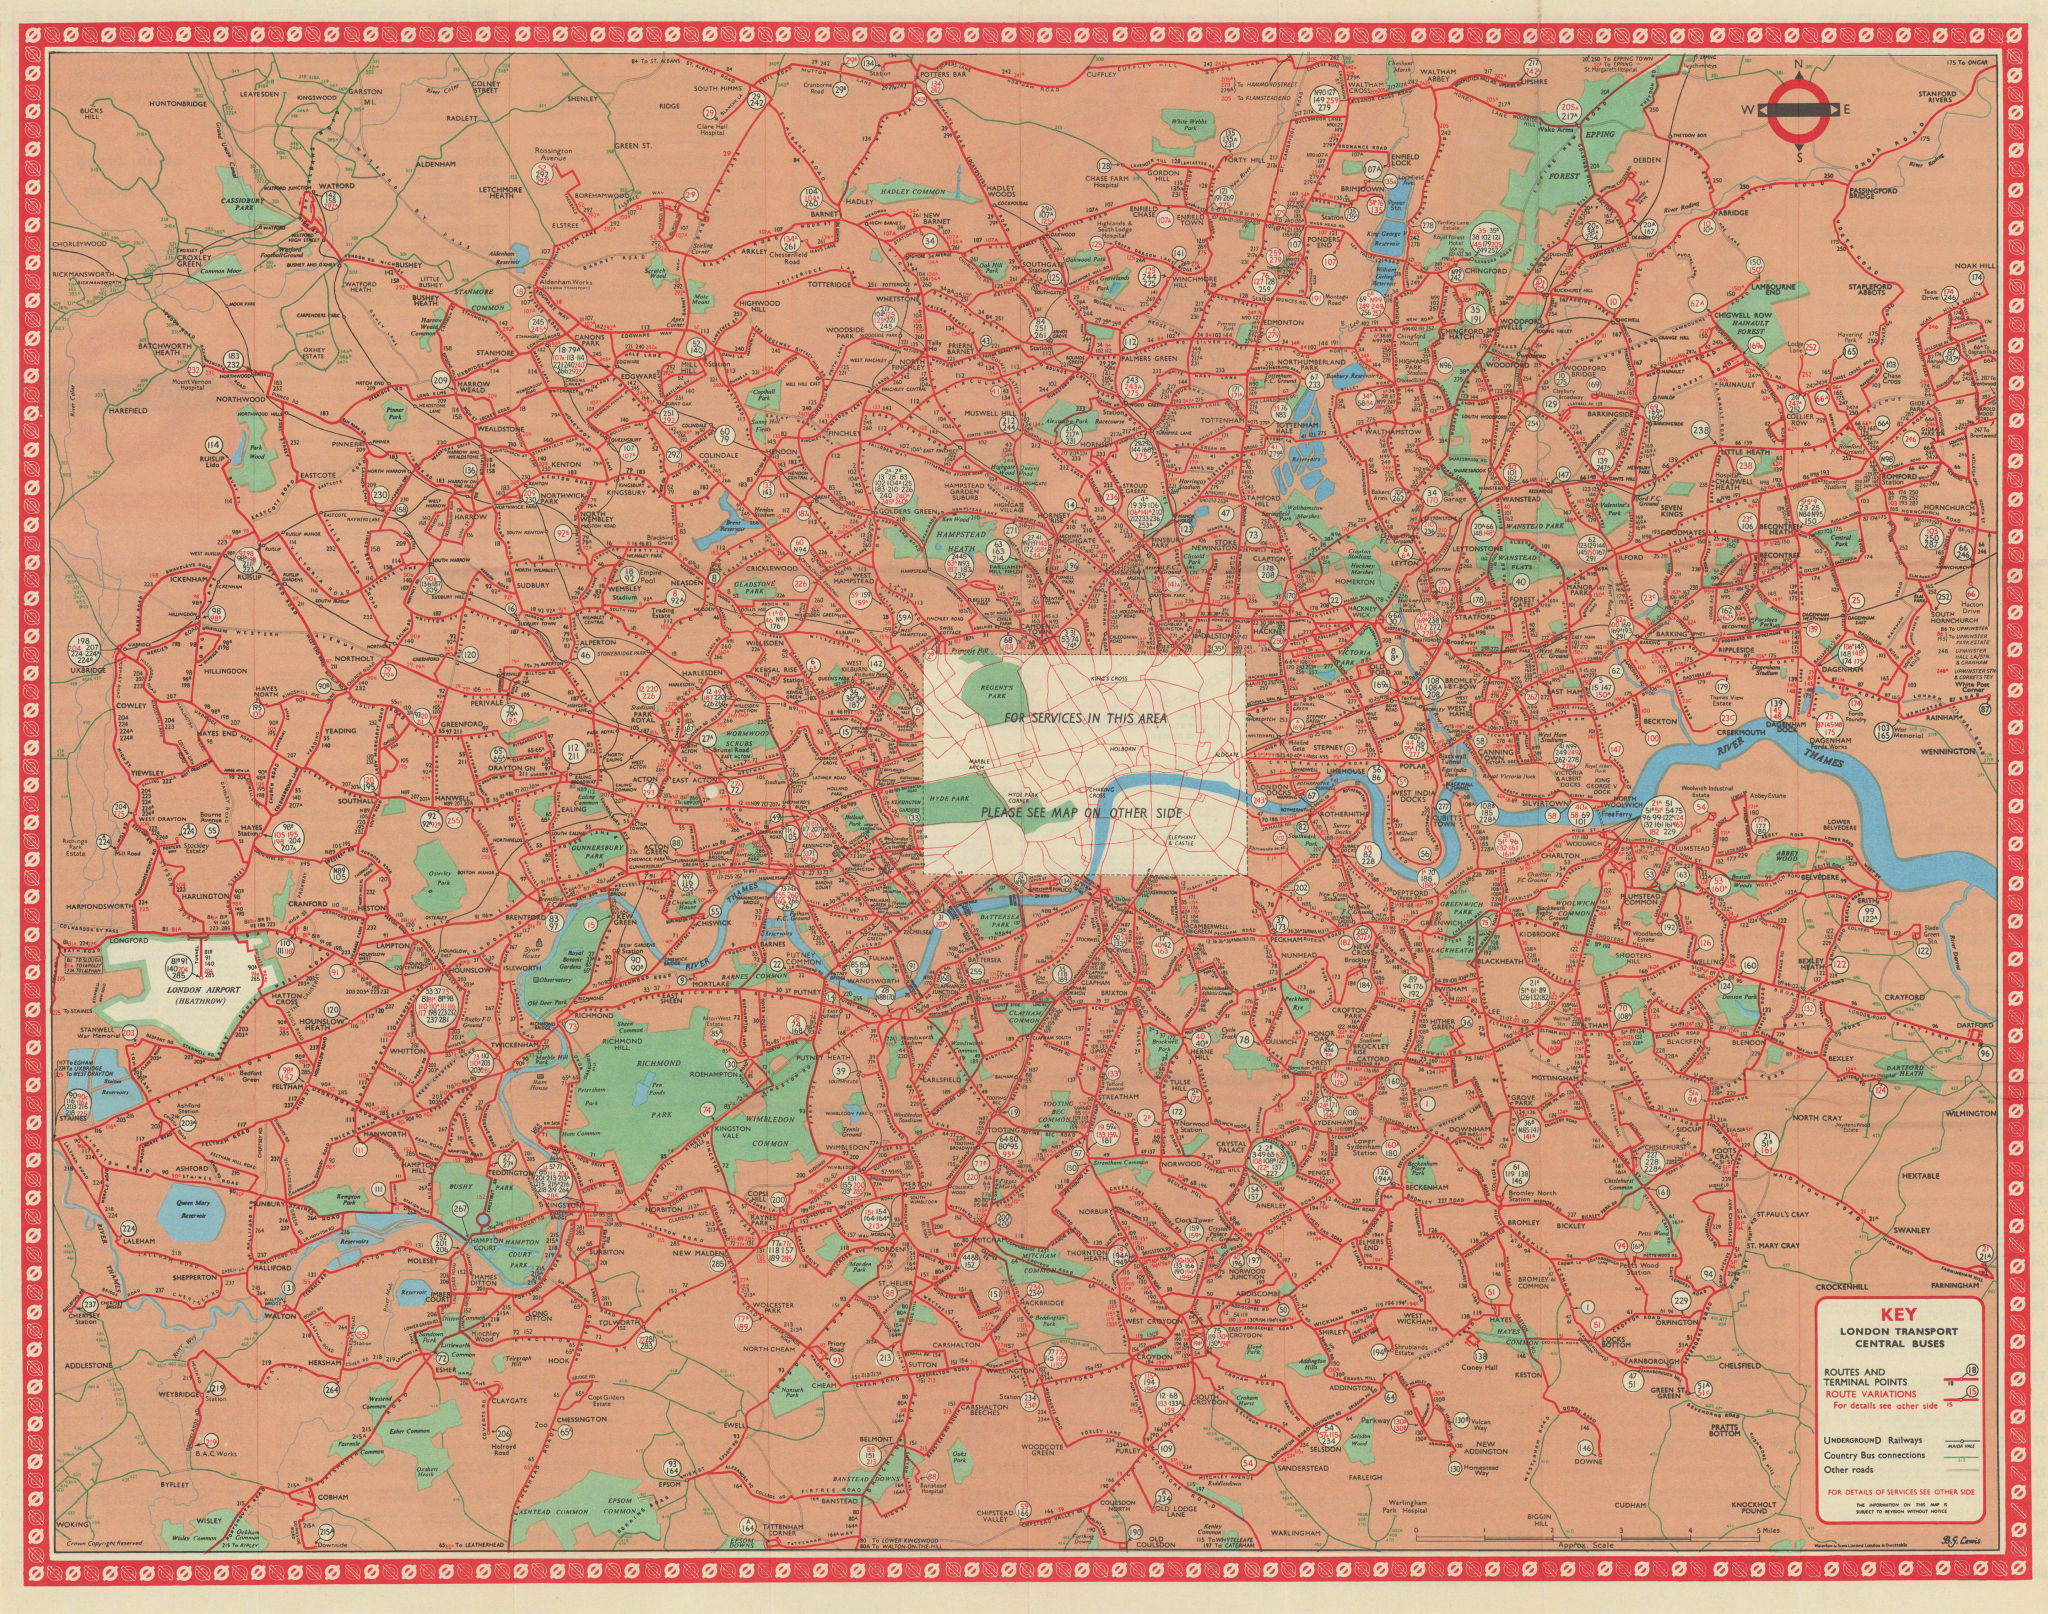 London Transport Central Buses map and list of routes. LEWIS #1 1967 old